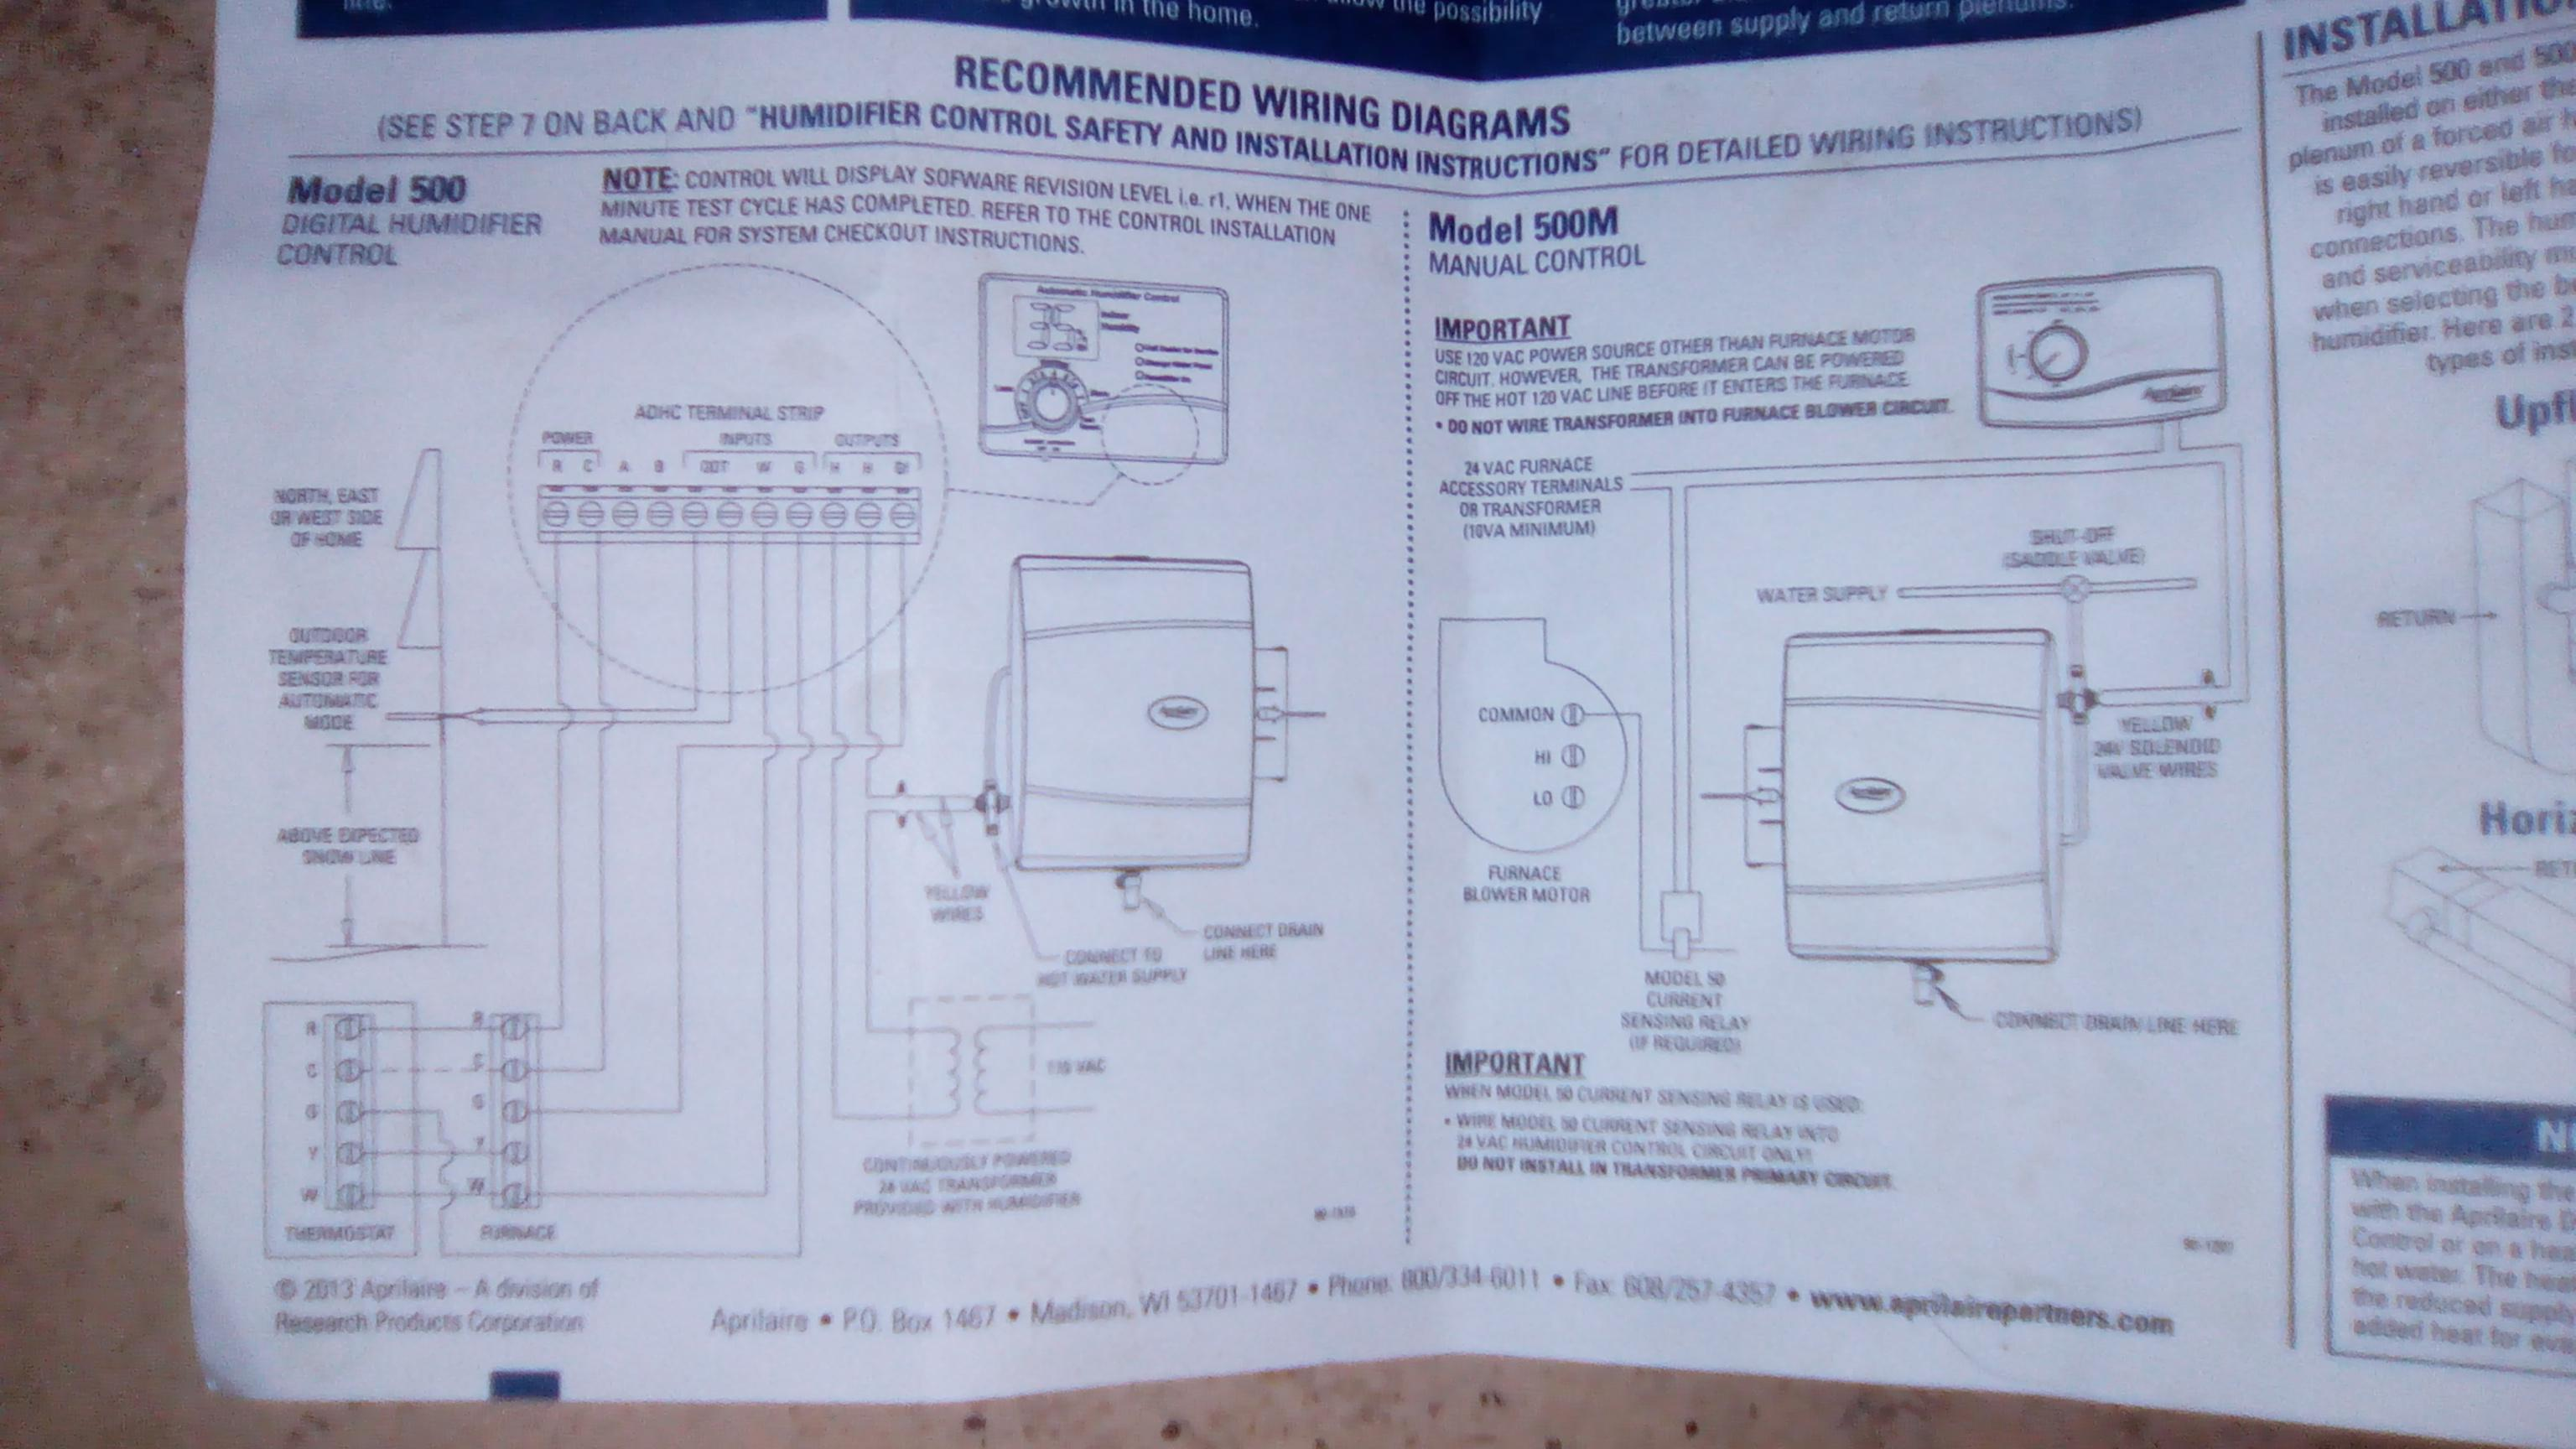 amana furnace blower wiring diagram sub configuration aprilaire 500 humidifier on an ams8